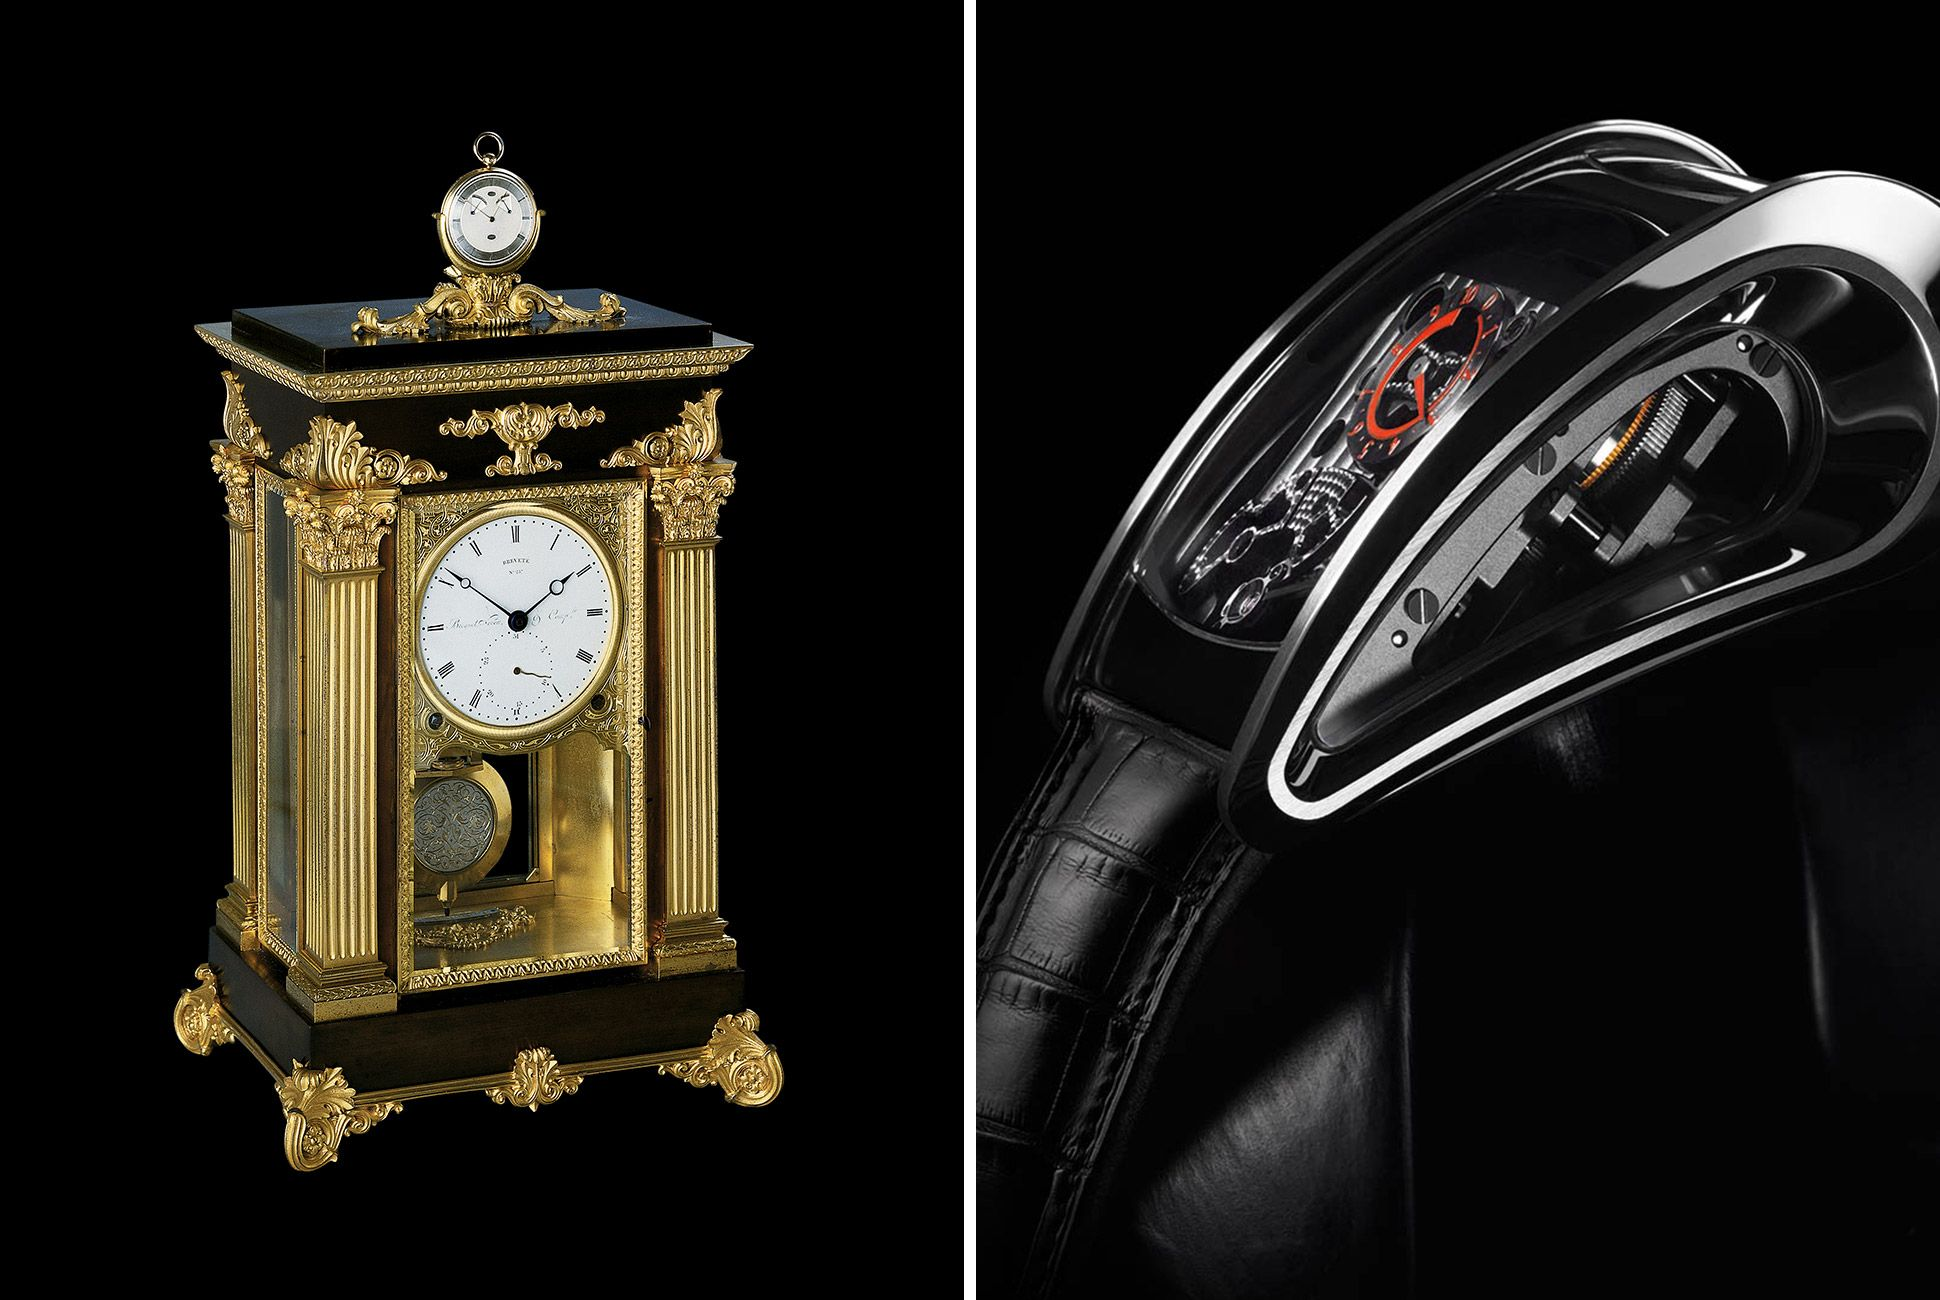 """Two of Parmigiani's most interesting (and contrasting pieces): his restoration of a Breguet """"sympathetic"""" clock (a pocket watch that docks and synchronizes to a pendulum clock) and the avant-garde piece created in collaboration with Bugatti."""